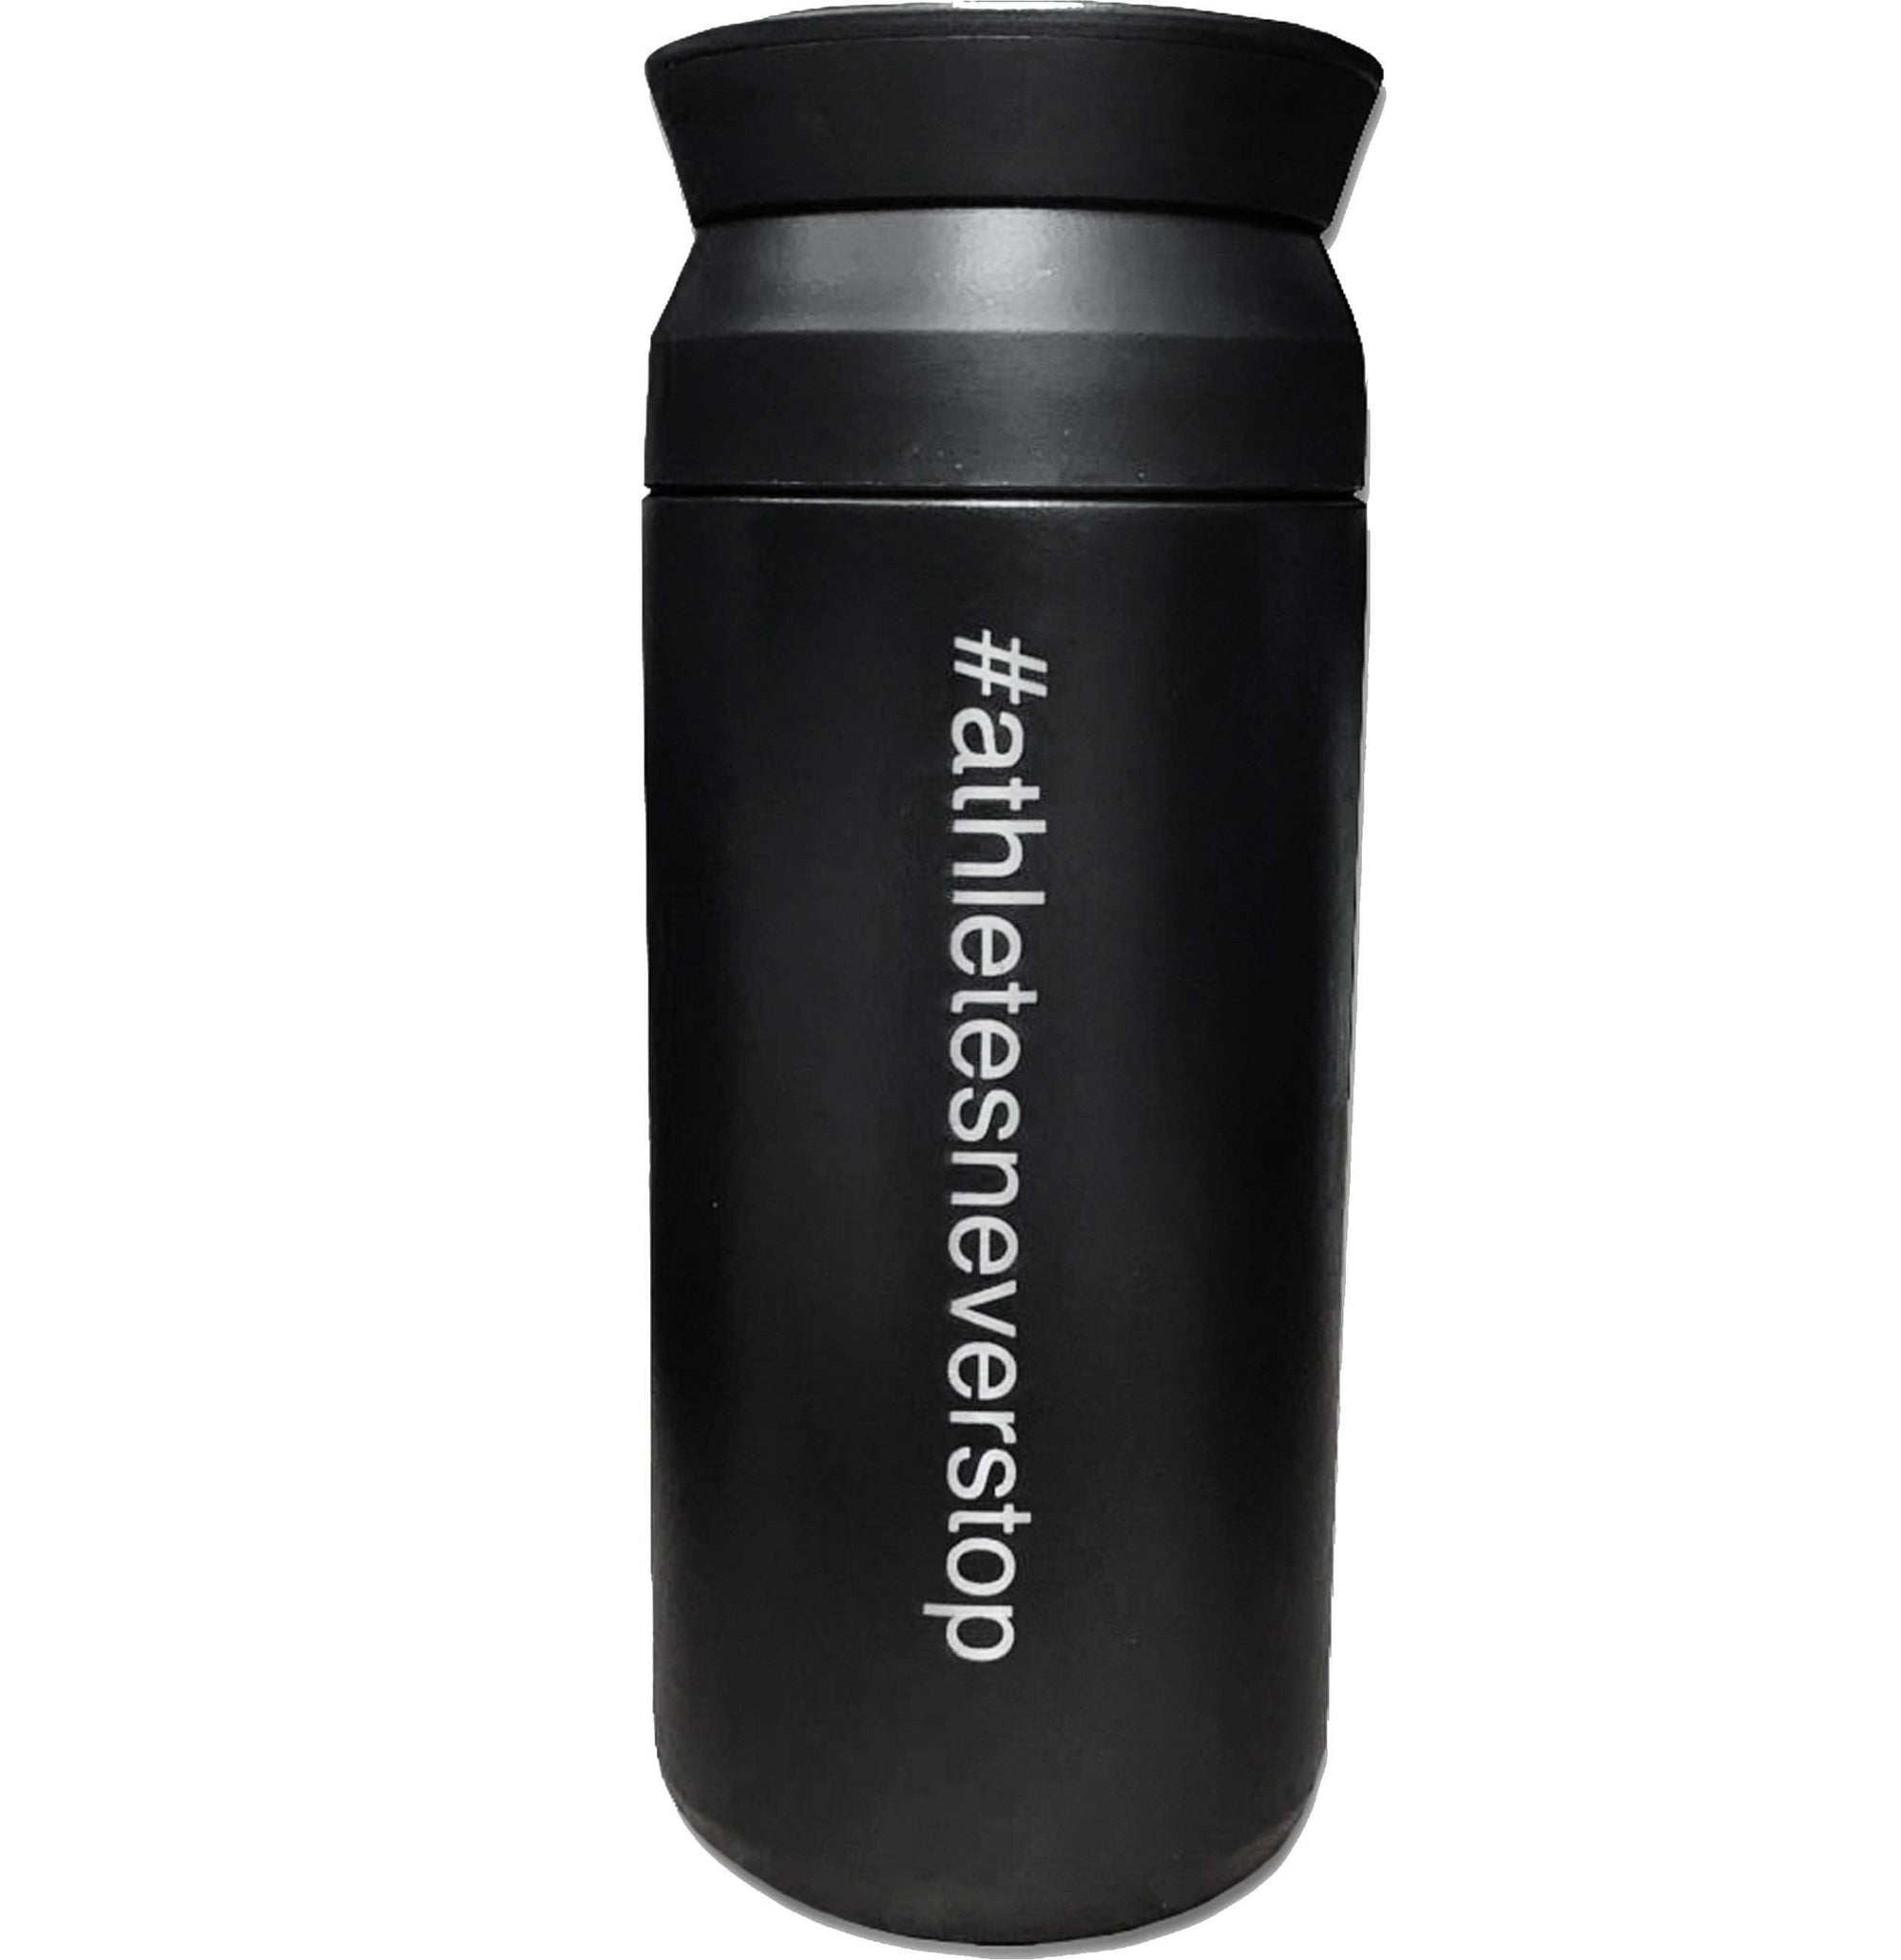 Built for Athletes Bottles Black Stainless Steel Reusable Coffee Cup